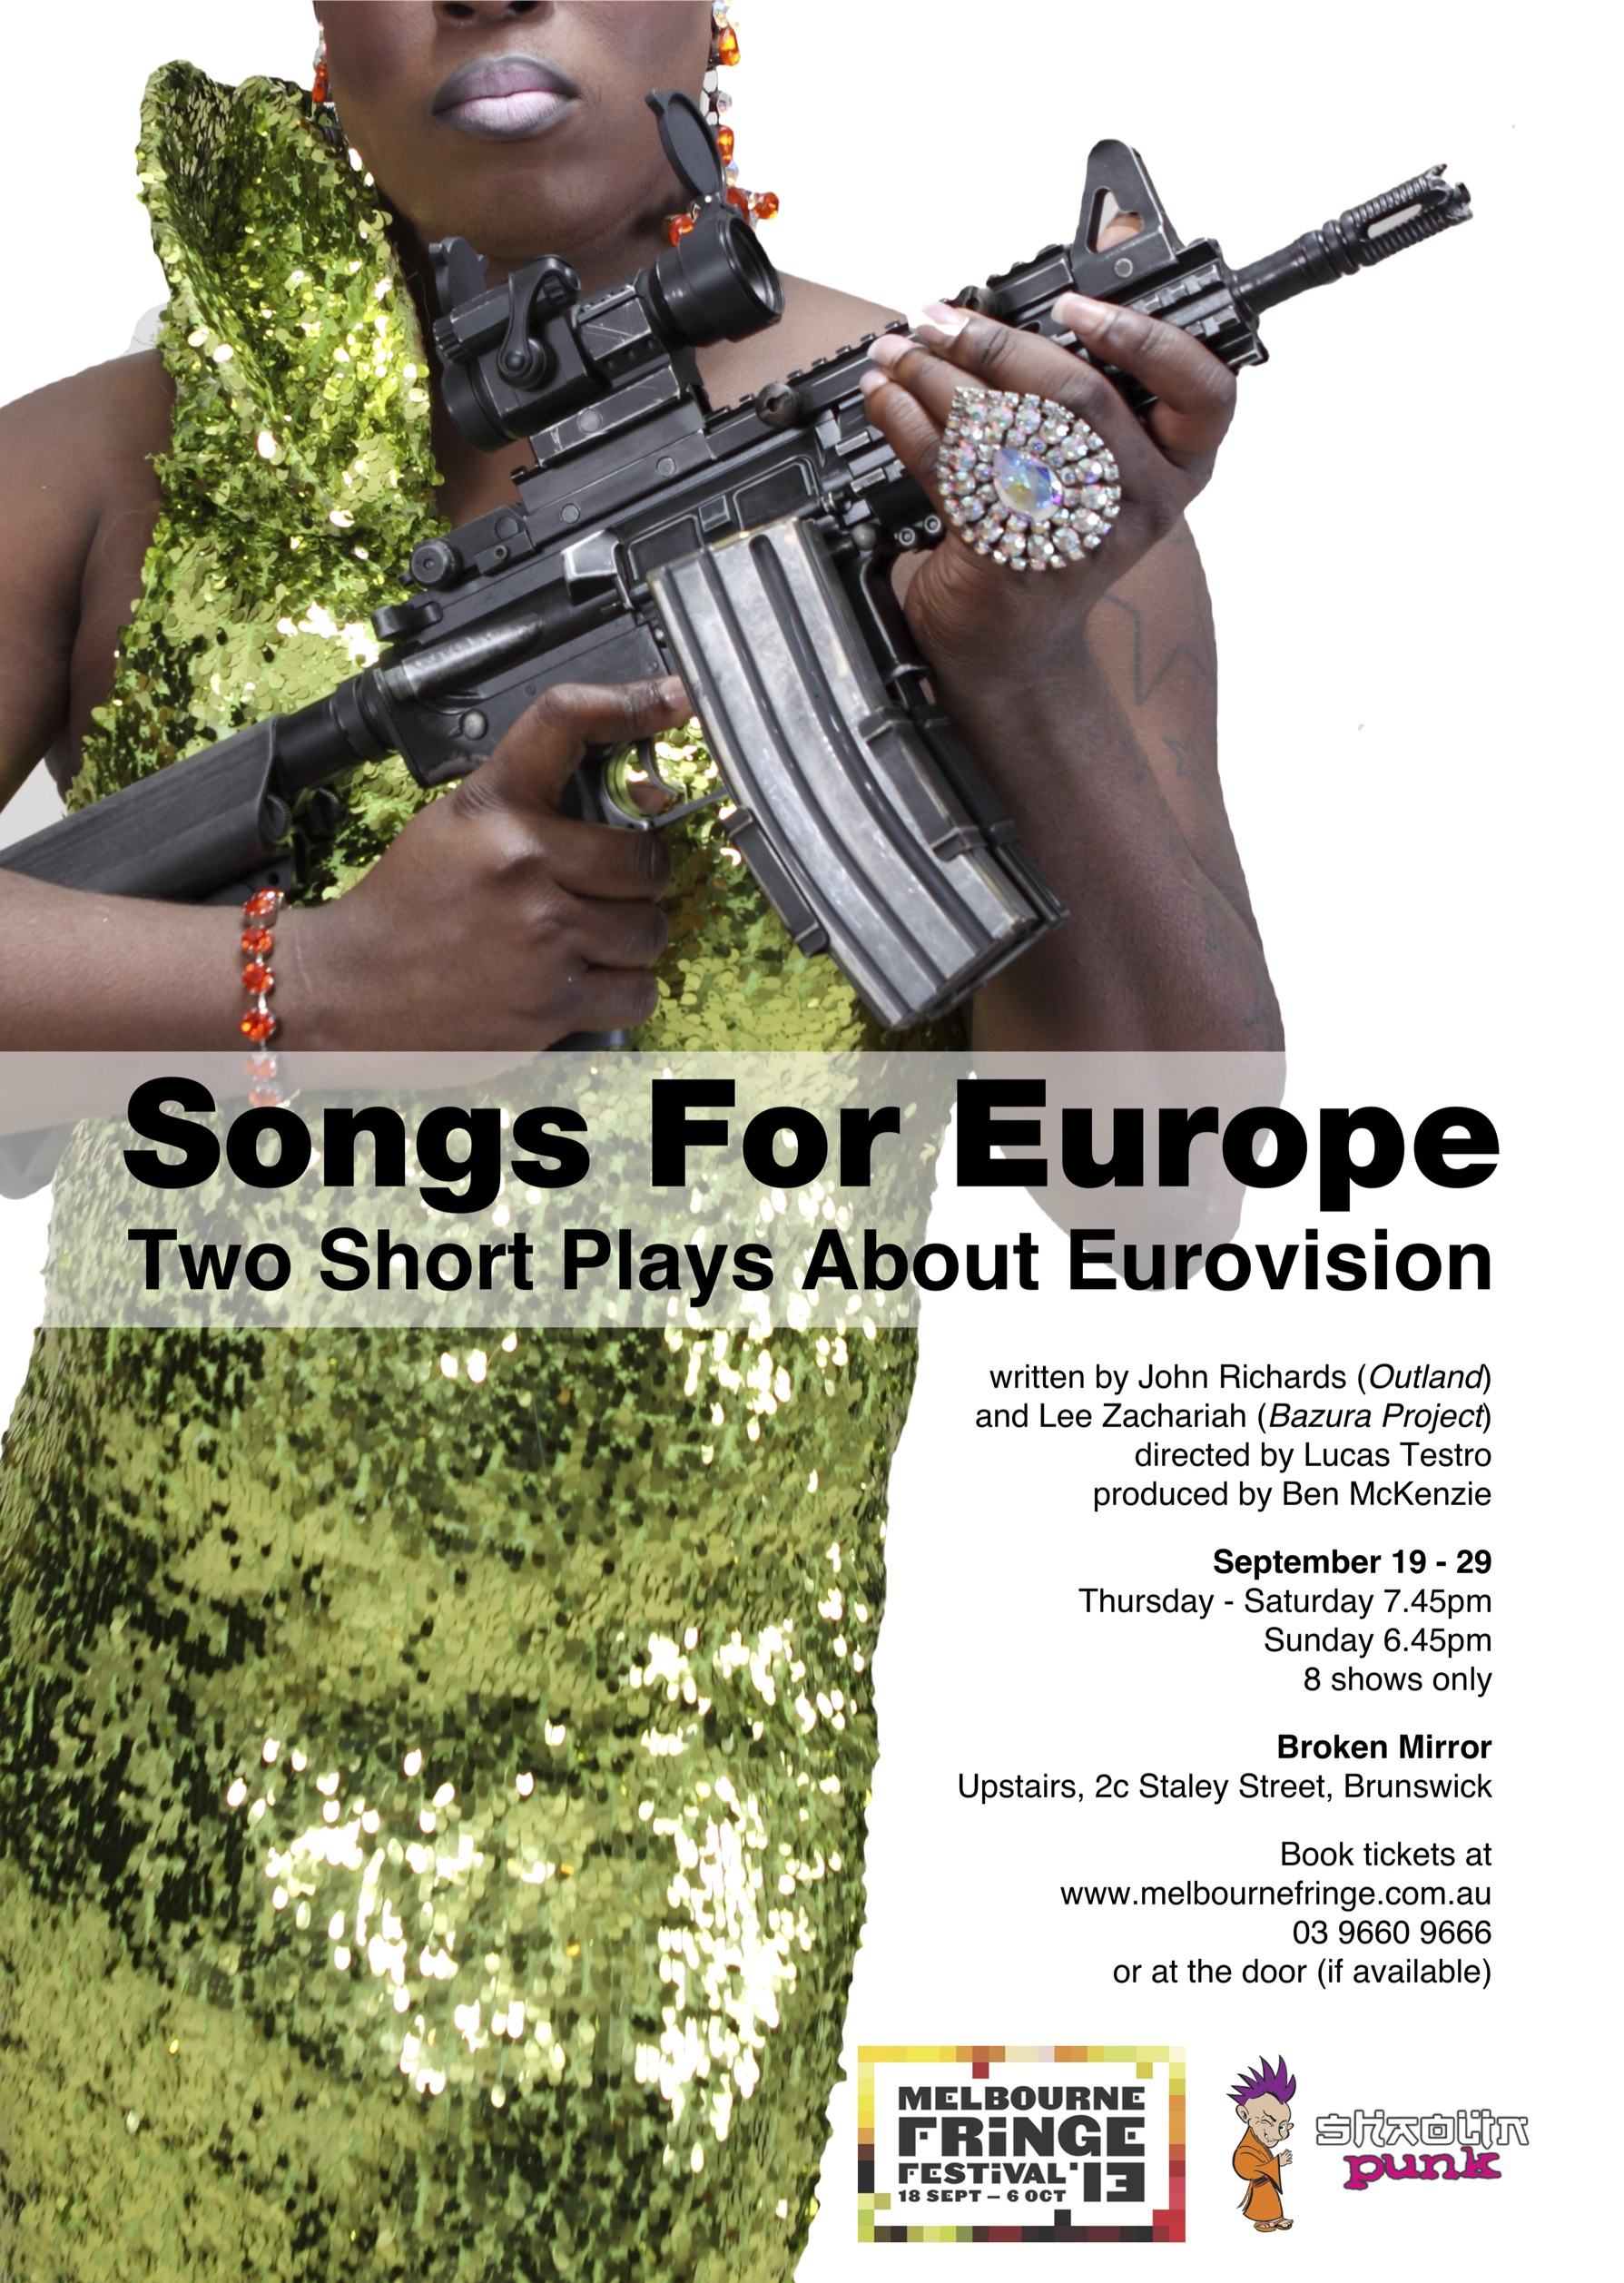 Songs for Europe Poster